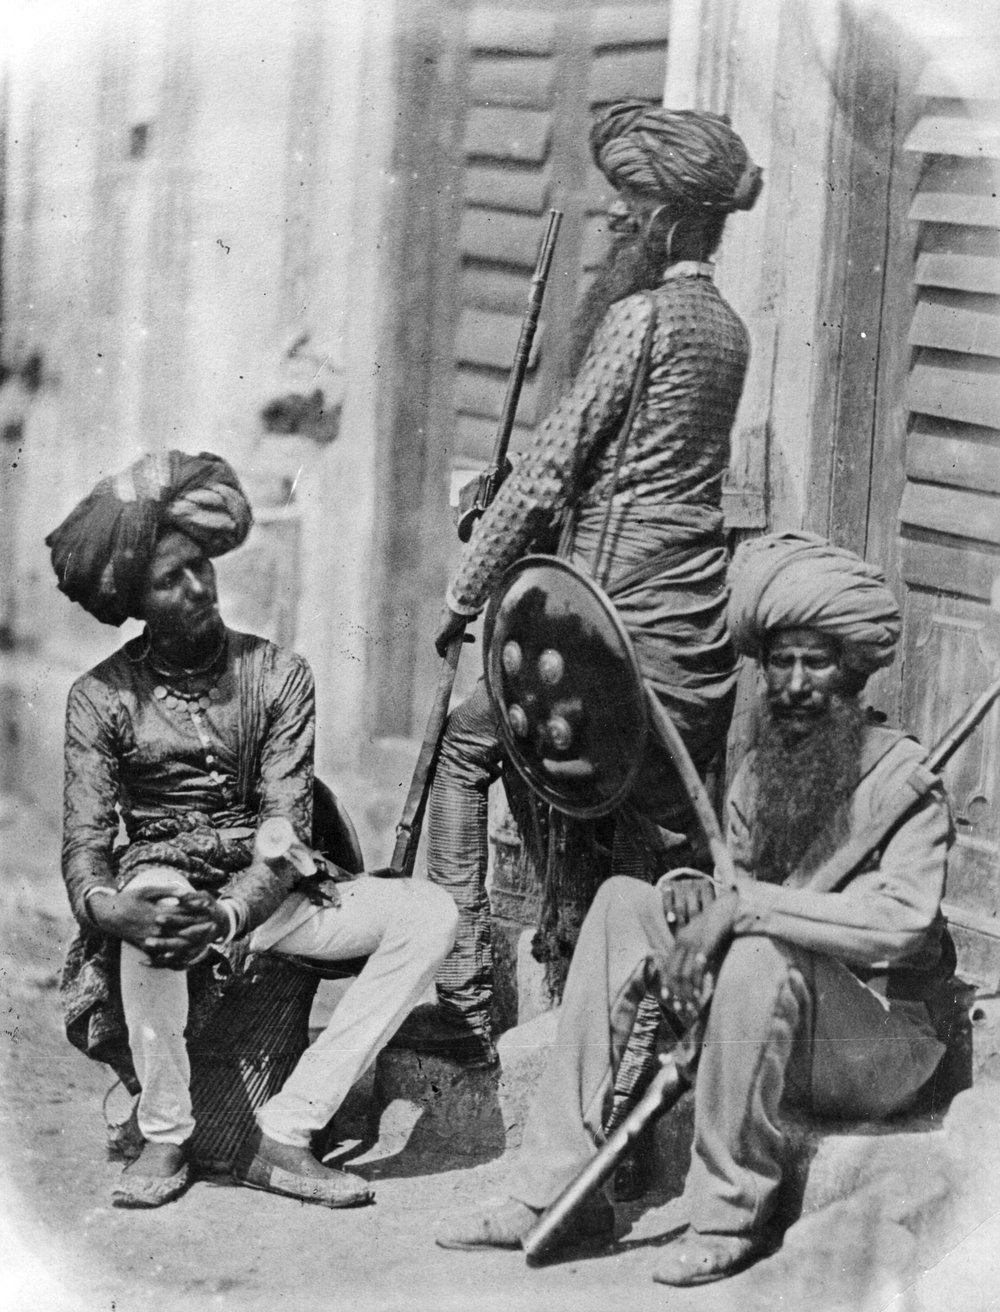 Afghan_Sikh_Officers_of_Hodson's_Horse,_a_cavalry_regiment_of_the_British_Indian_Army.jpeg